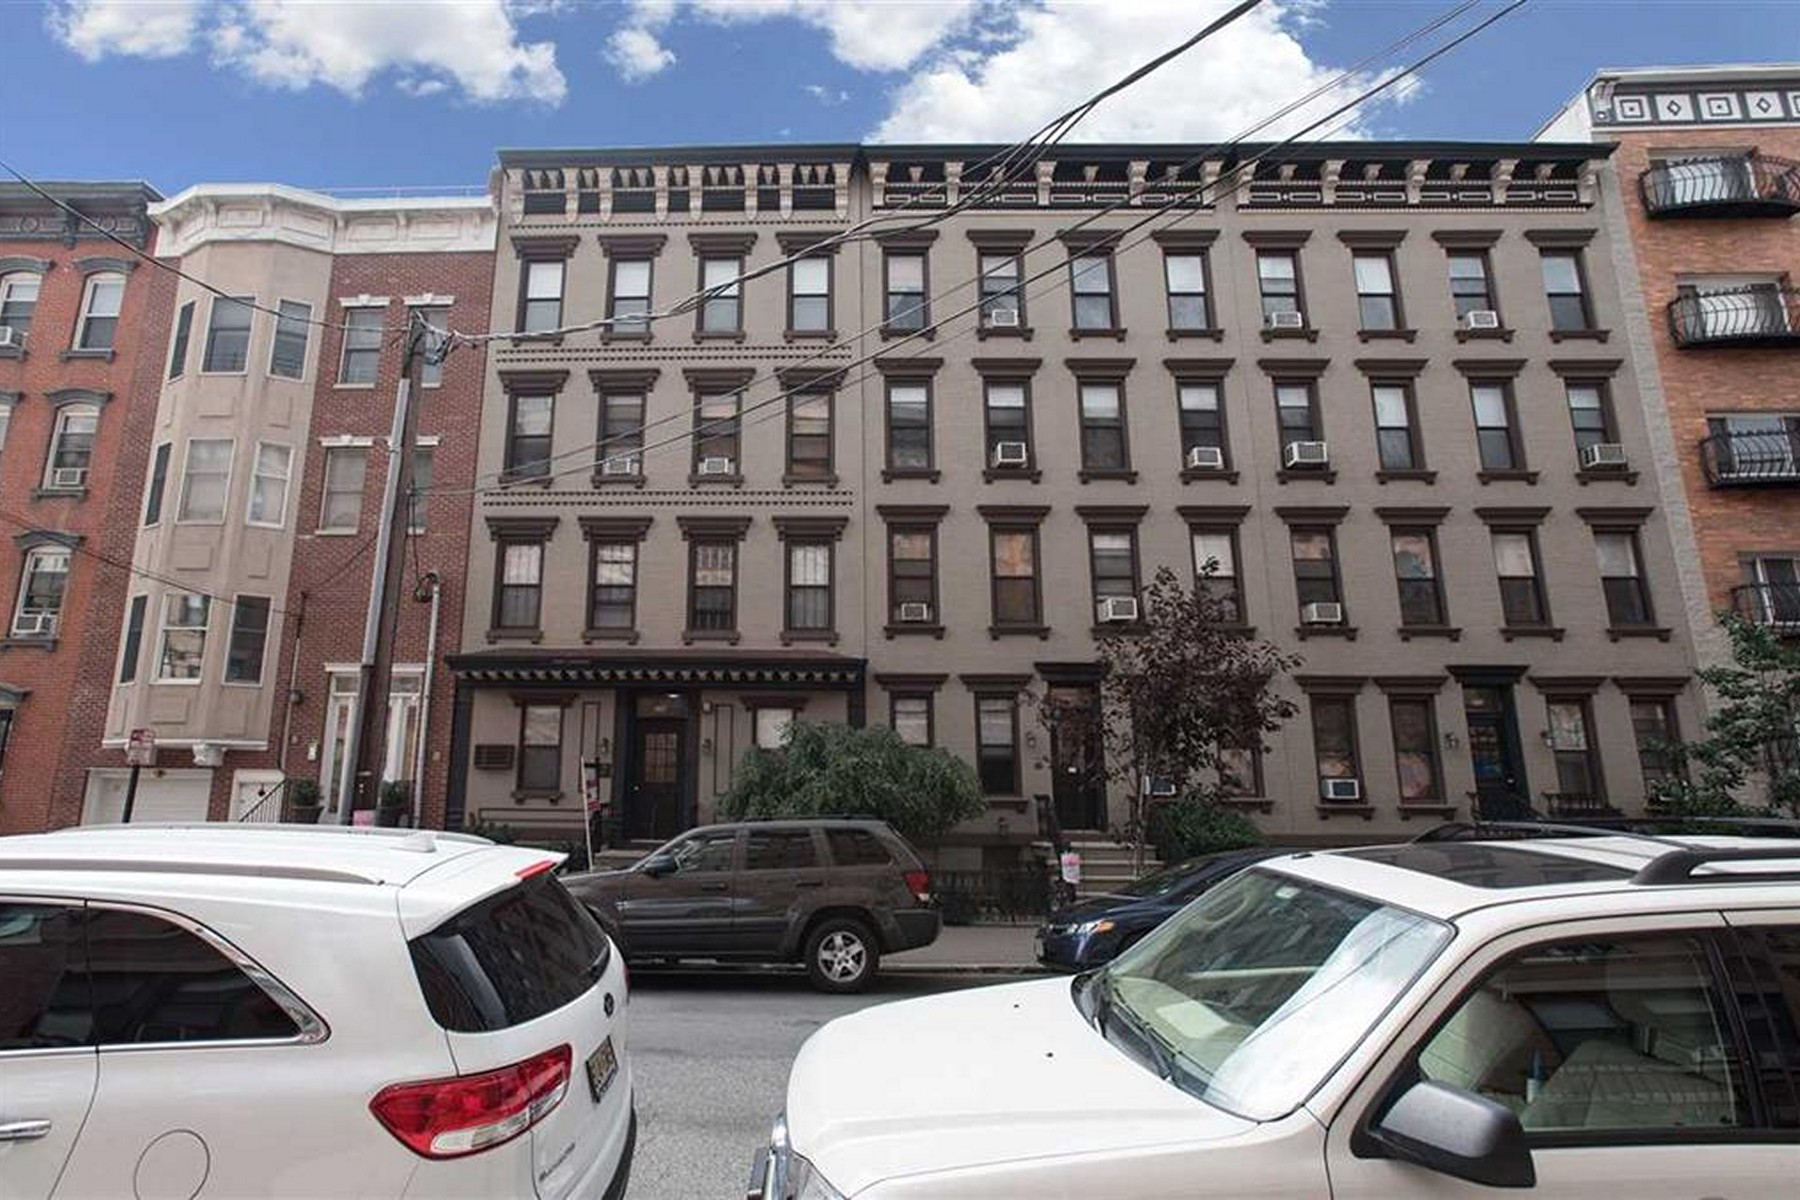 Condominiums for Sale at Super Clean Sunny One bed/one bath on tree lined Willow Avenue. 208 Willow Ave #305, Hoboken, New Jersey 07030 United States